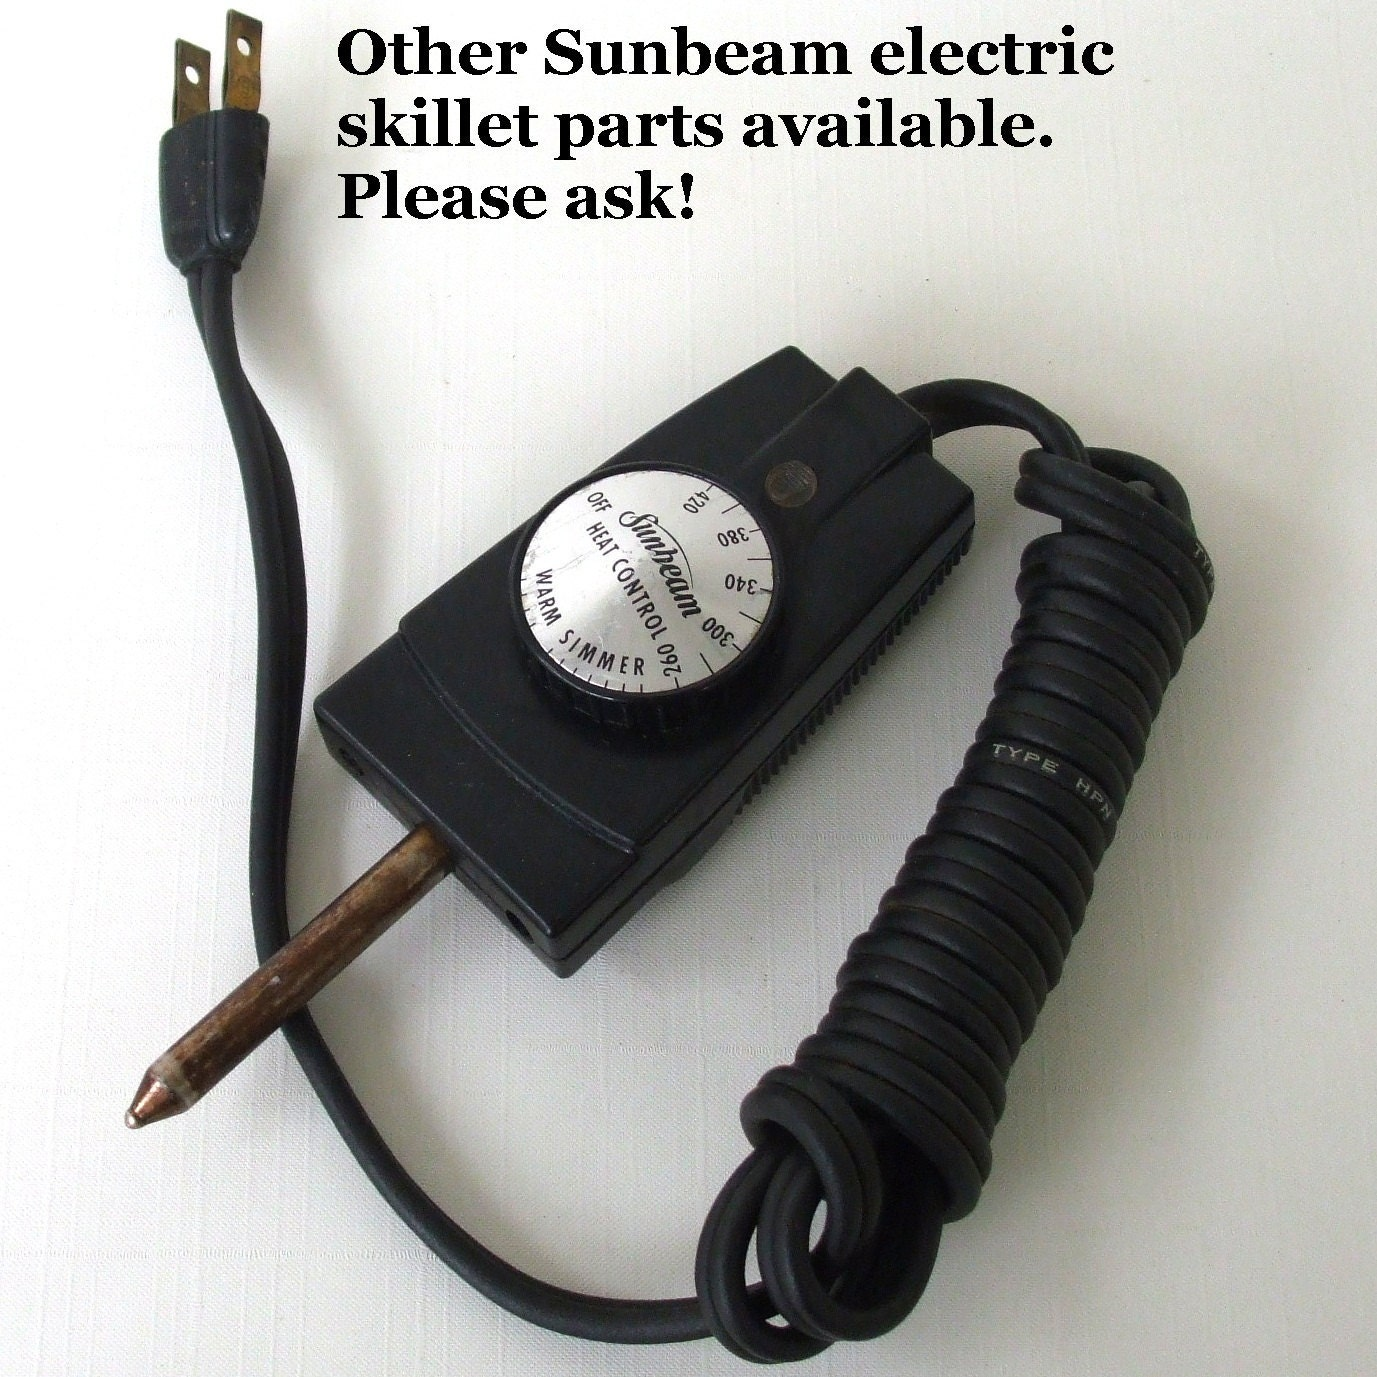 Sunbeam Electric Frying Pan Heat Control Replacement Part Rc